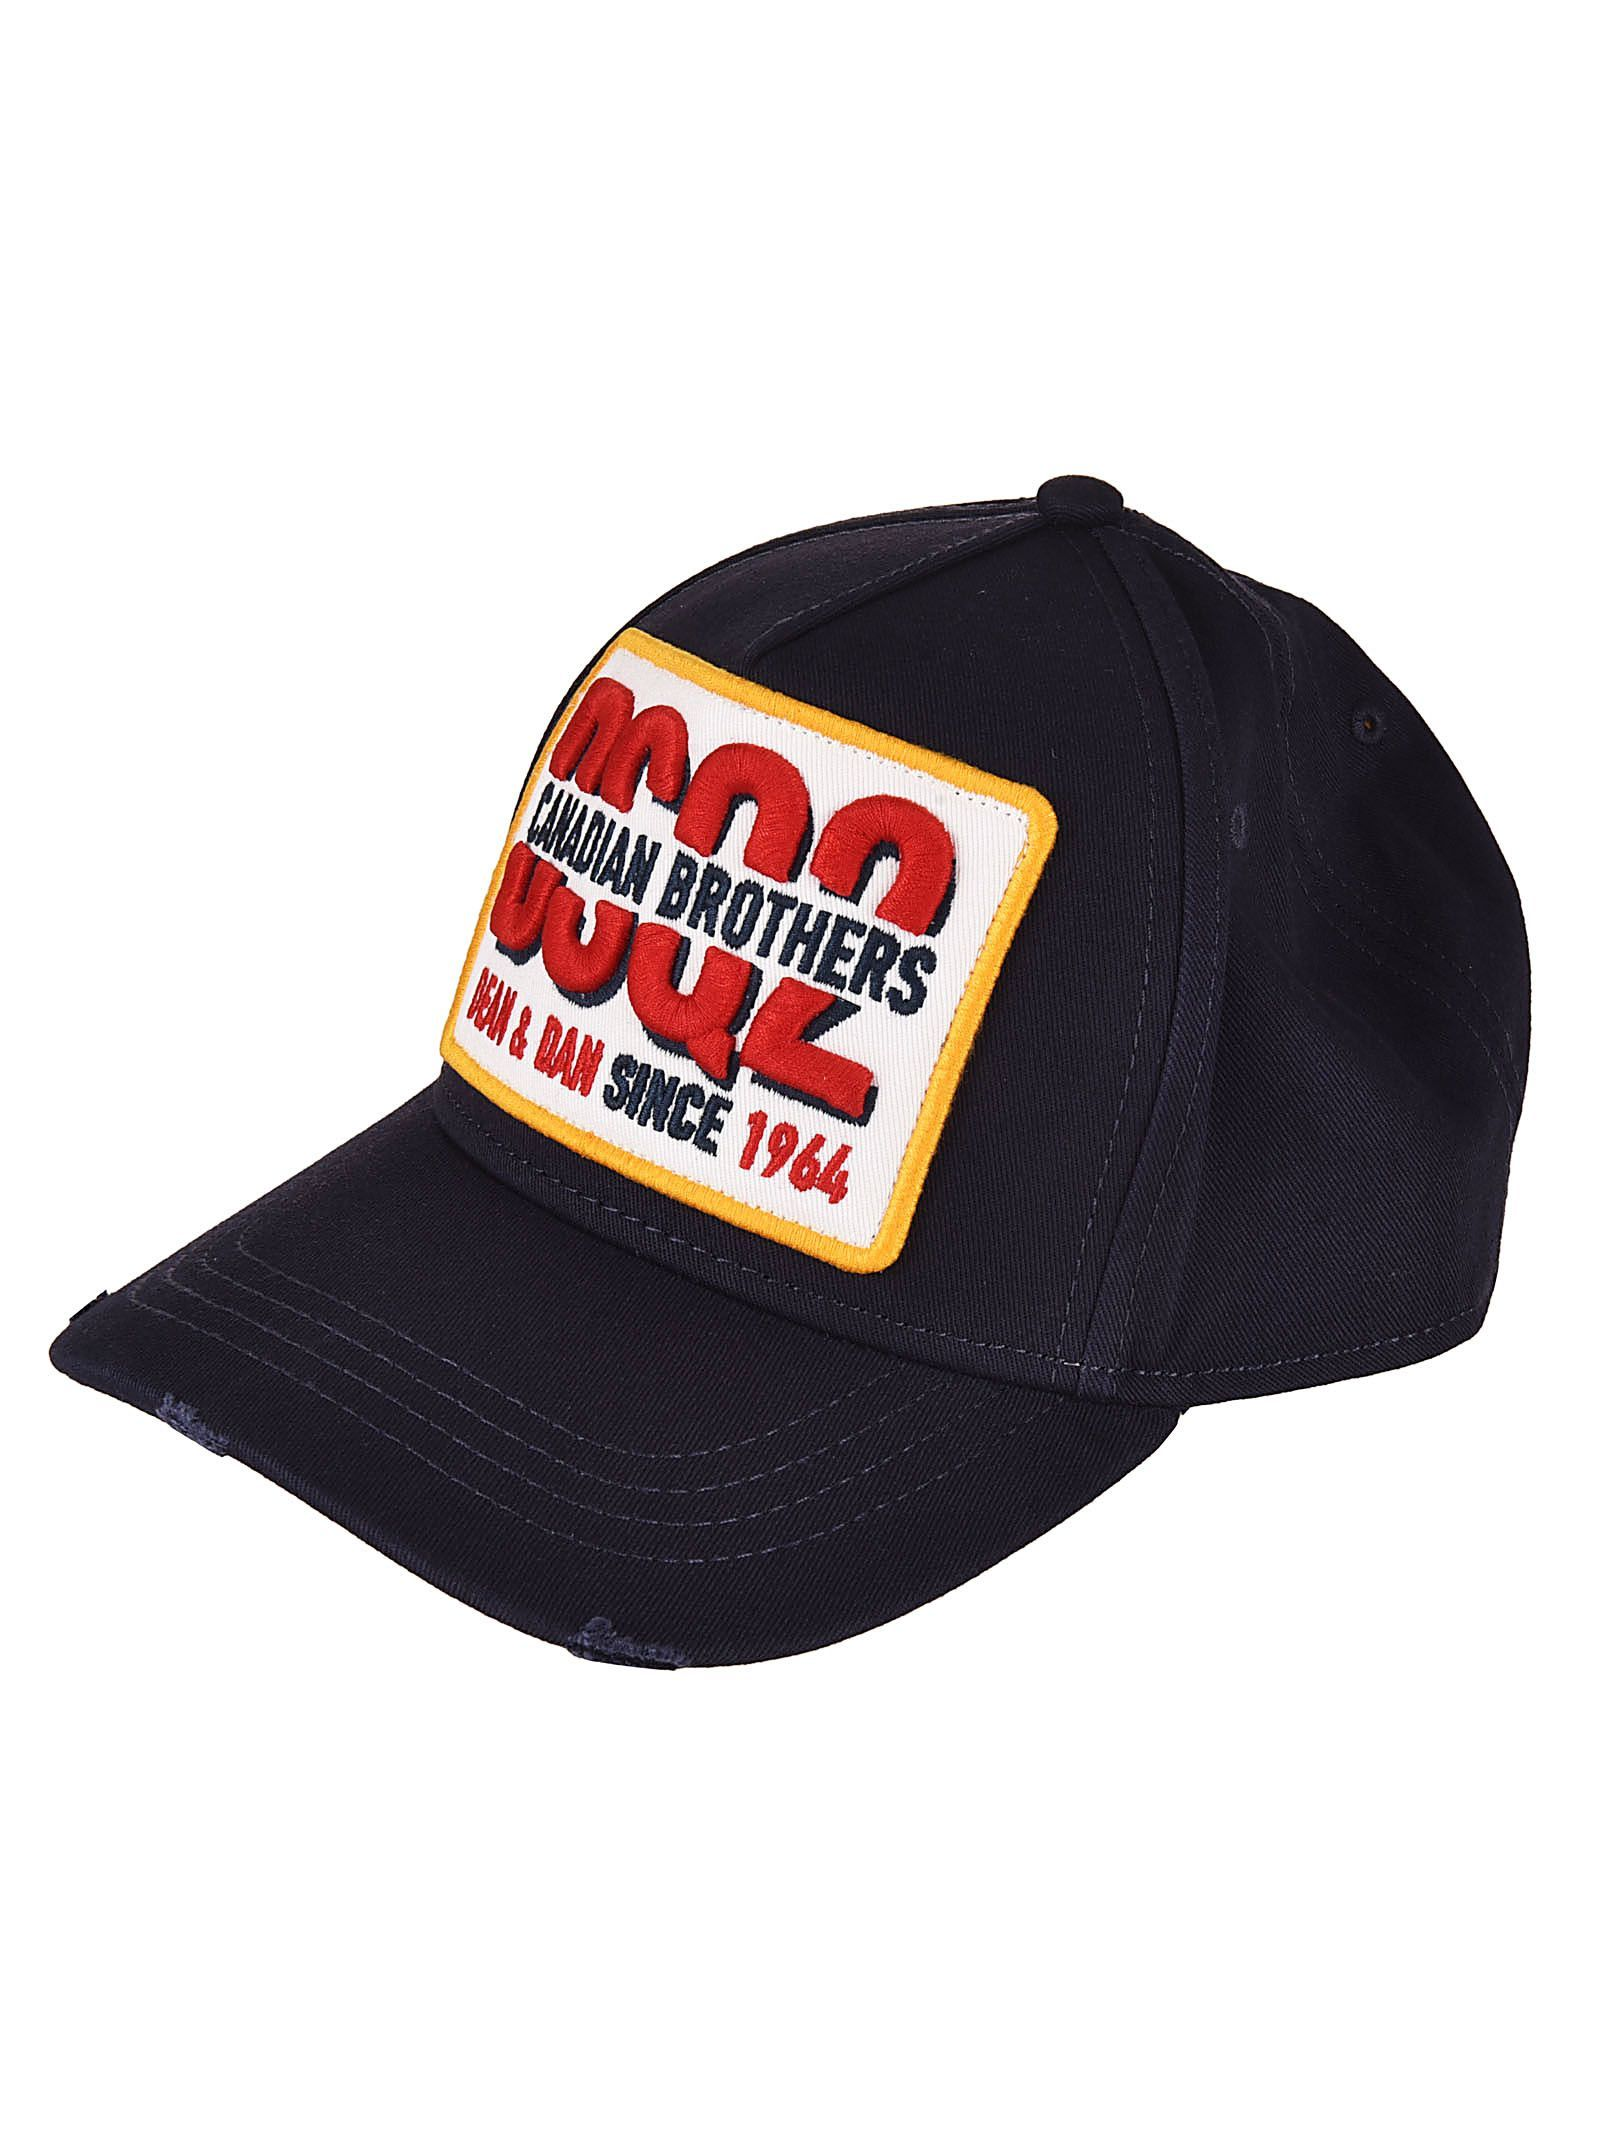 5fef409c32208 DSQUARED2 CANADIAN BROTHERS LOGO CAP.  dsquared2 Dsquared2